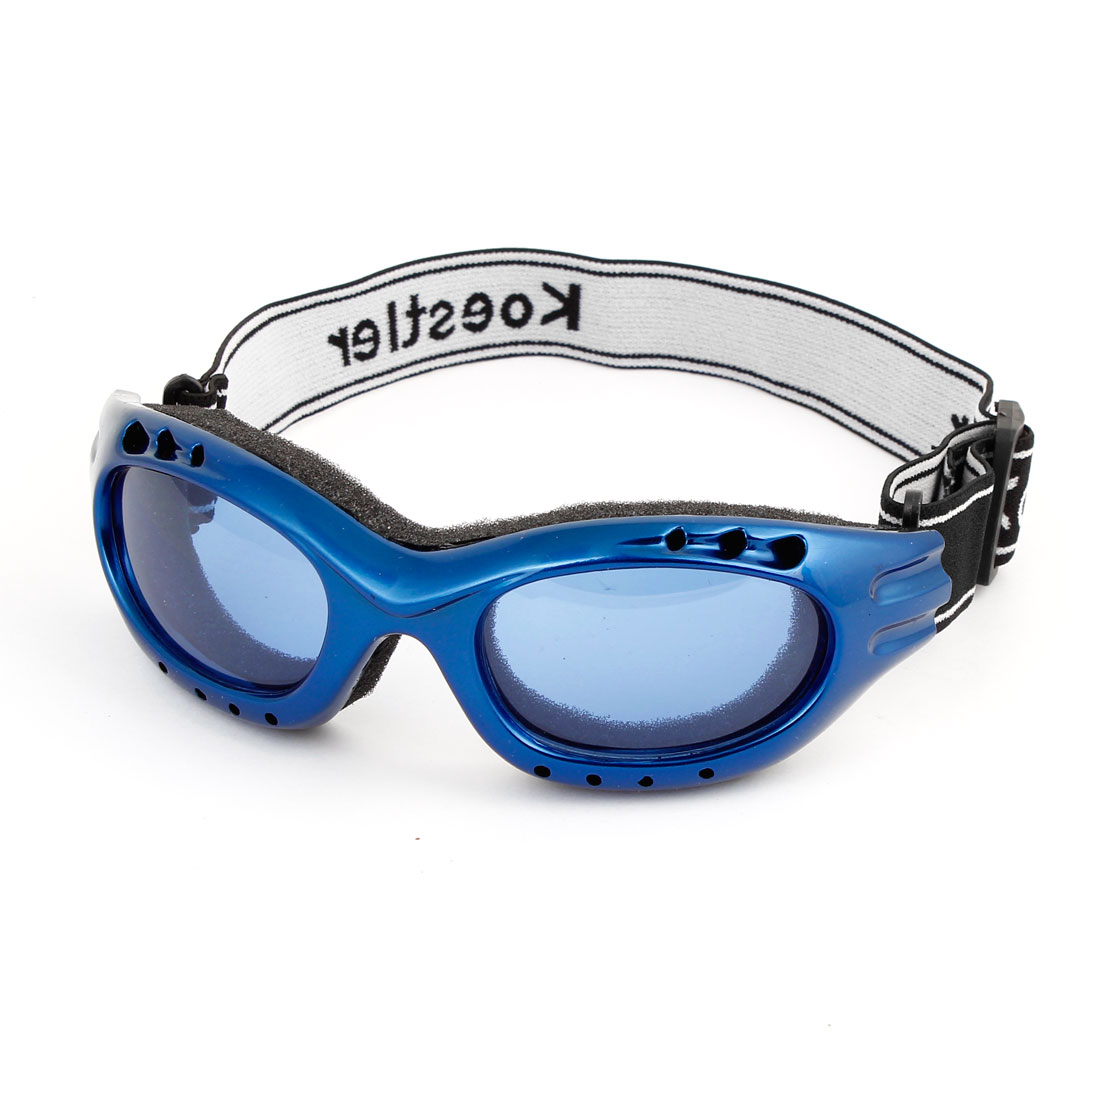 Black Full Rimmed Sponge Loaded Motorbike Motorcycle Eyeshield Glasses Blue